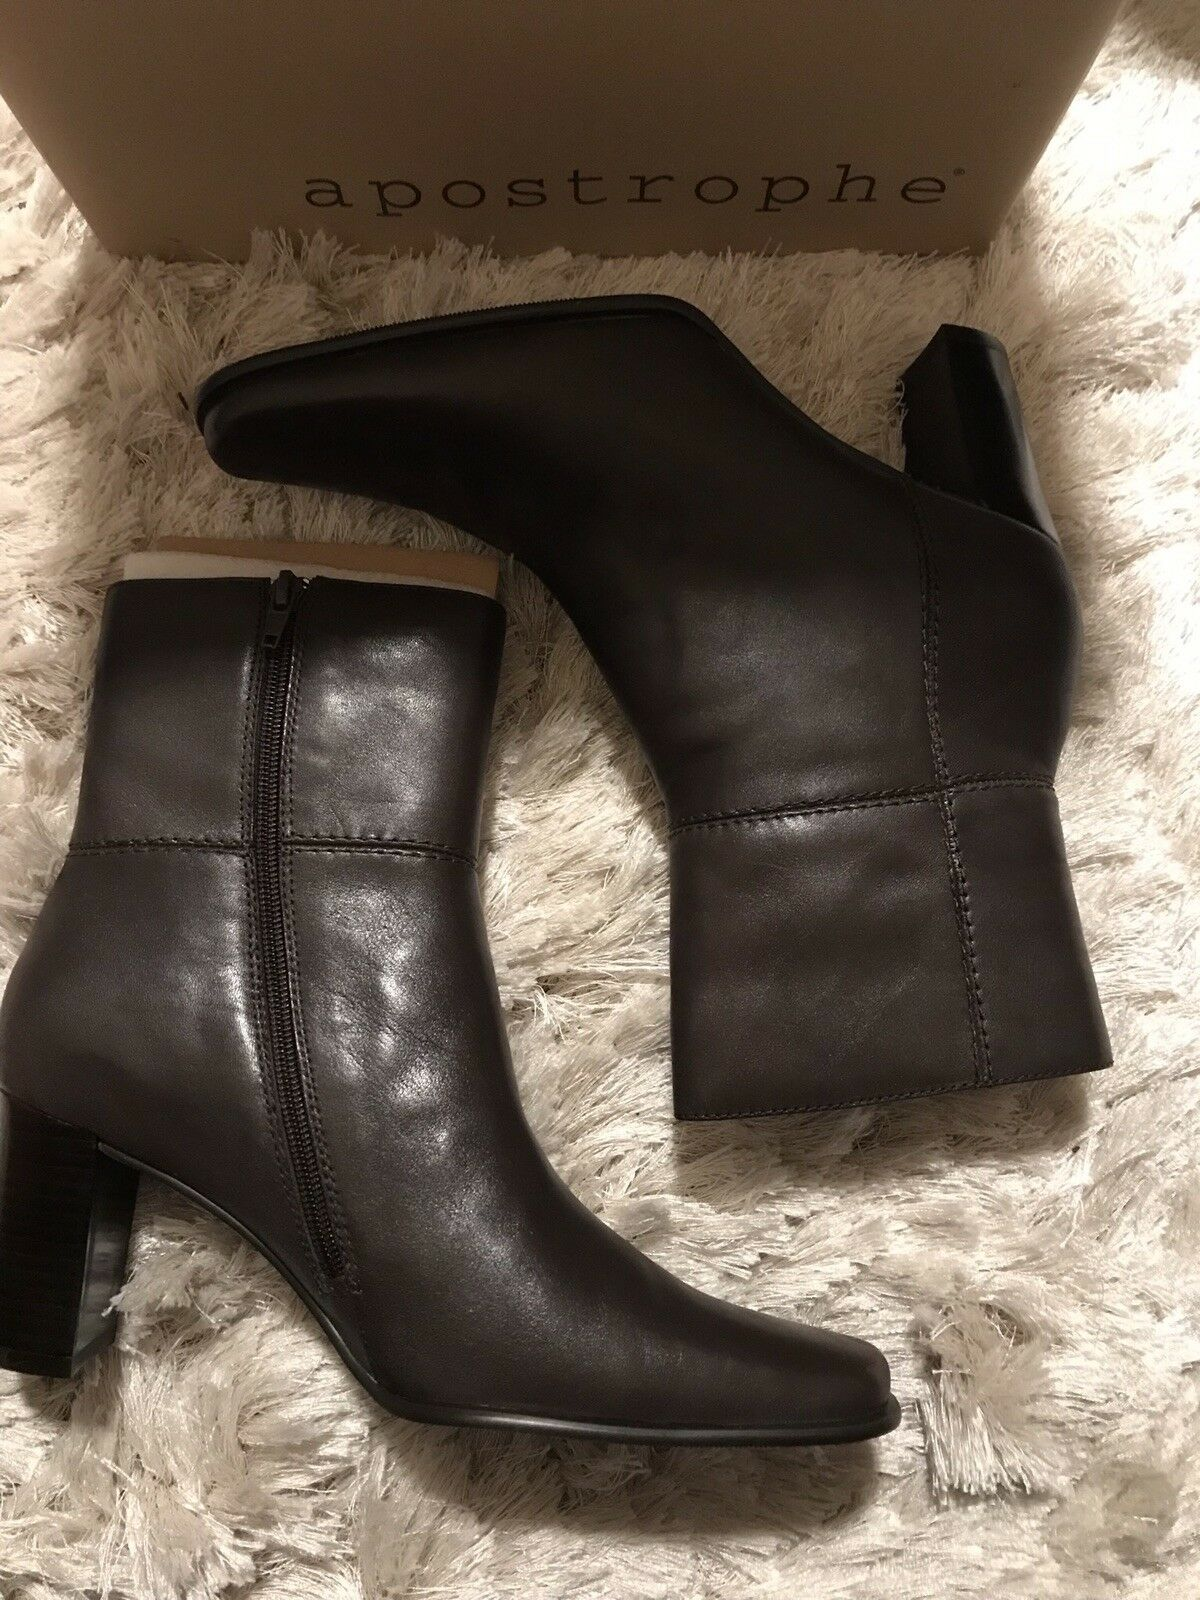 APOSTROPHE JENNA BROWN LEATHER ANKLE BOOTS 8.5M SHOES